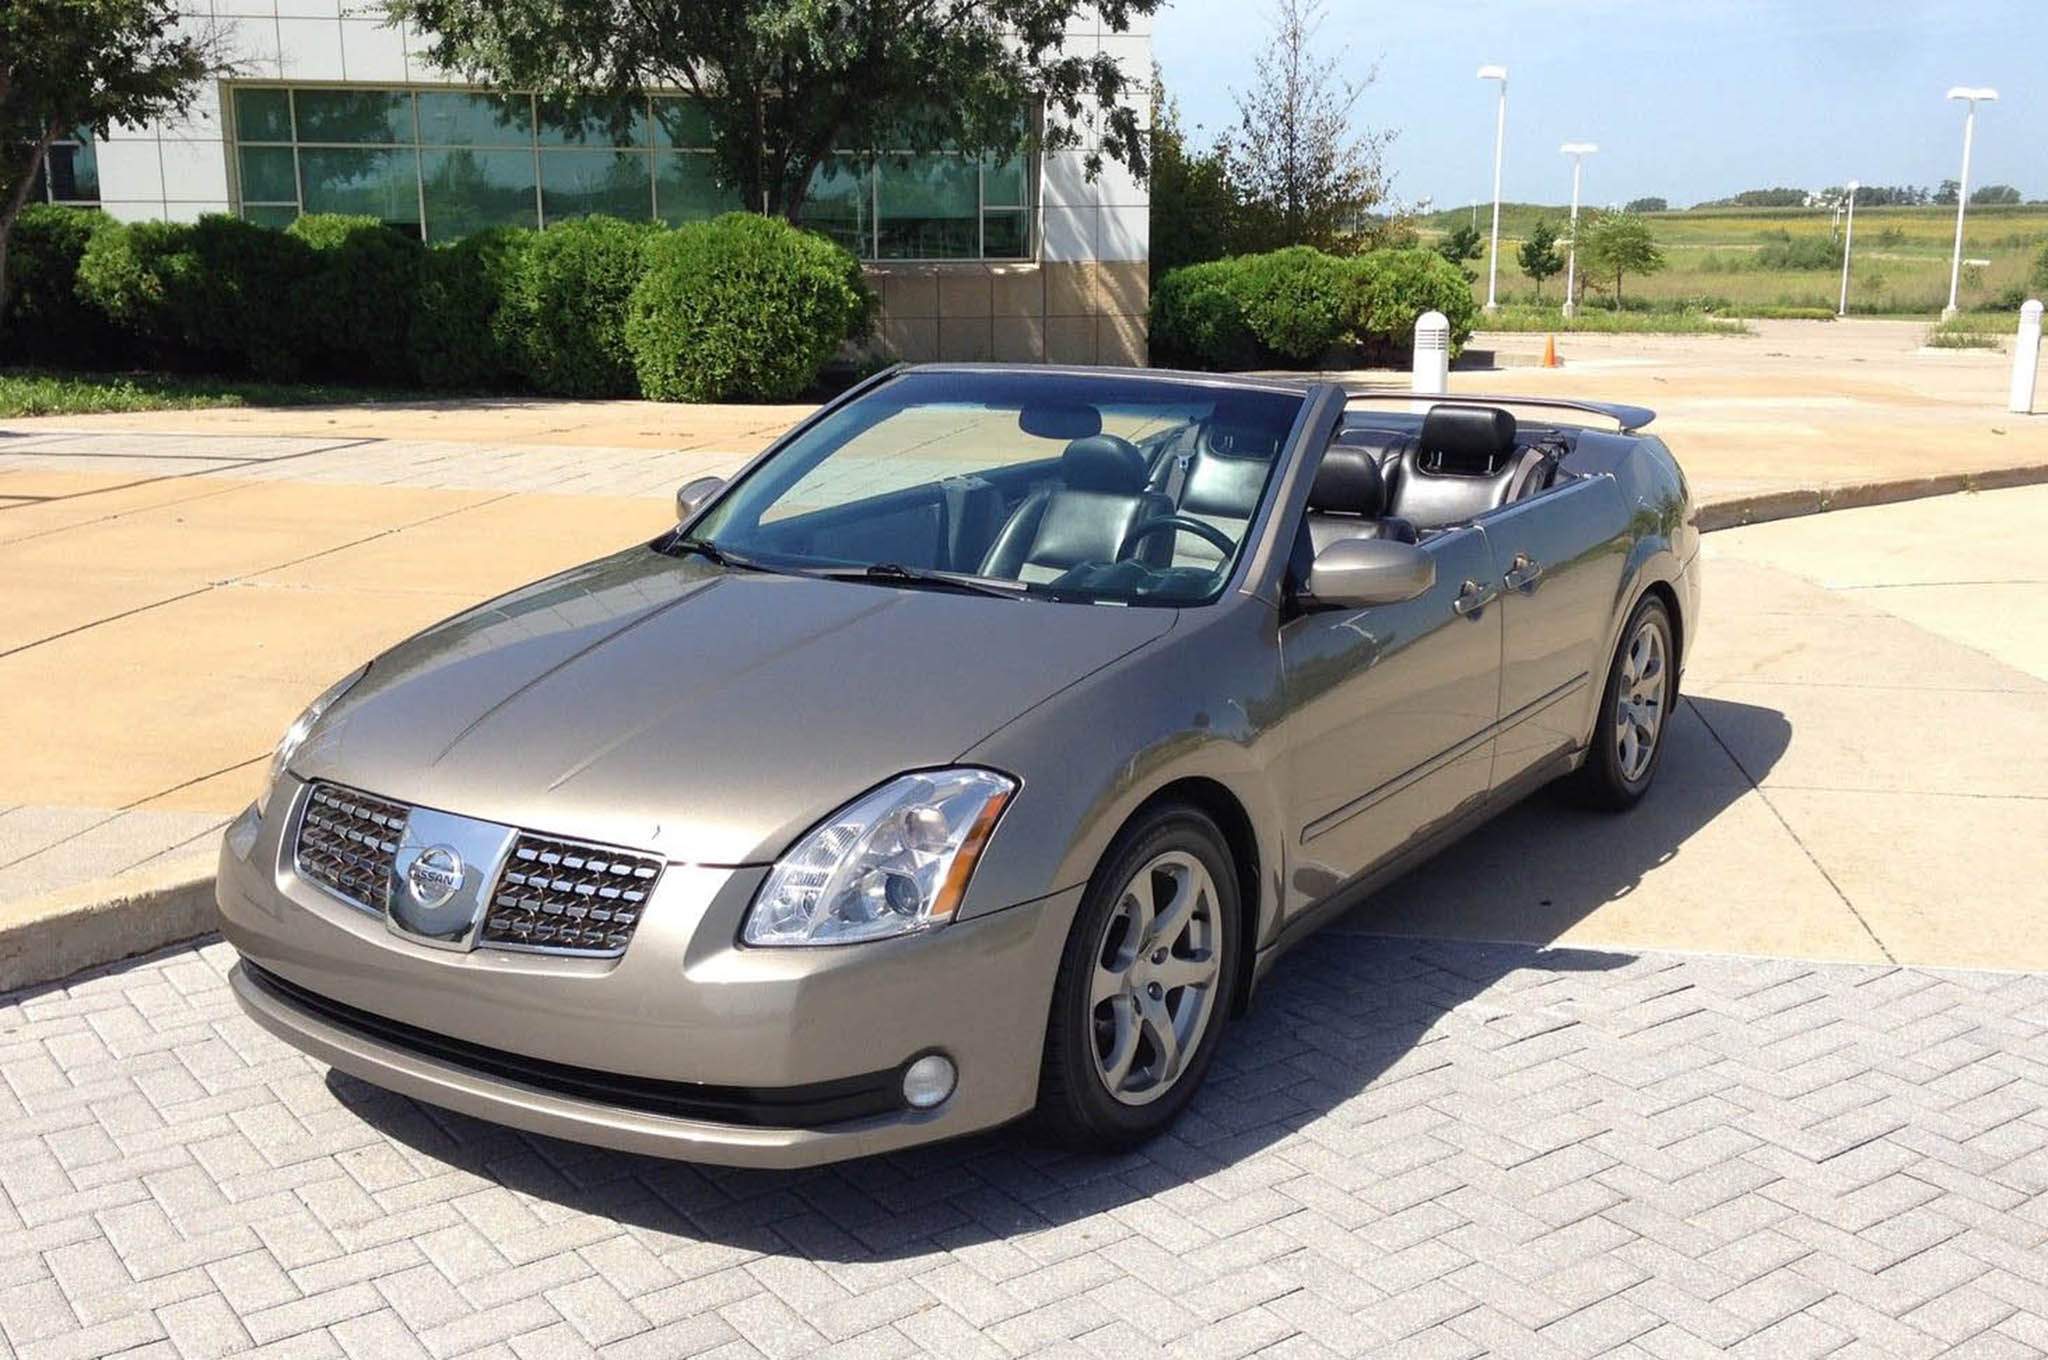 2004 Nissan Maxima Photo Gallery Latest News Features